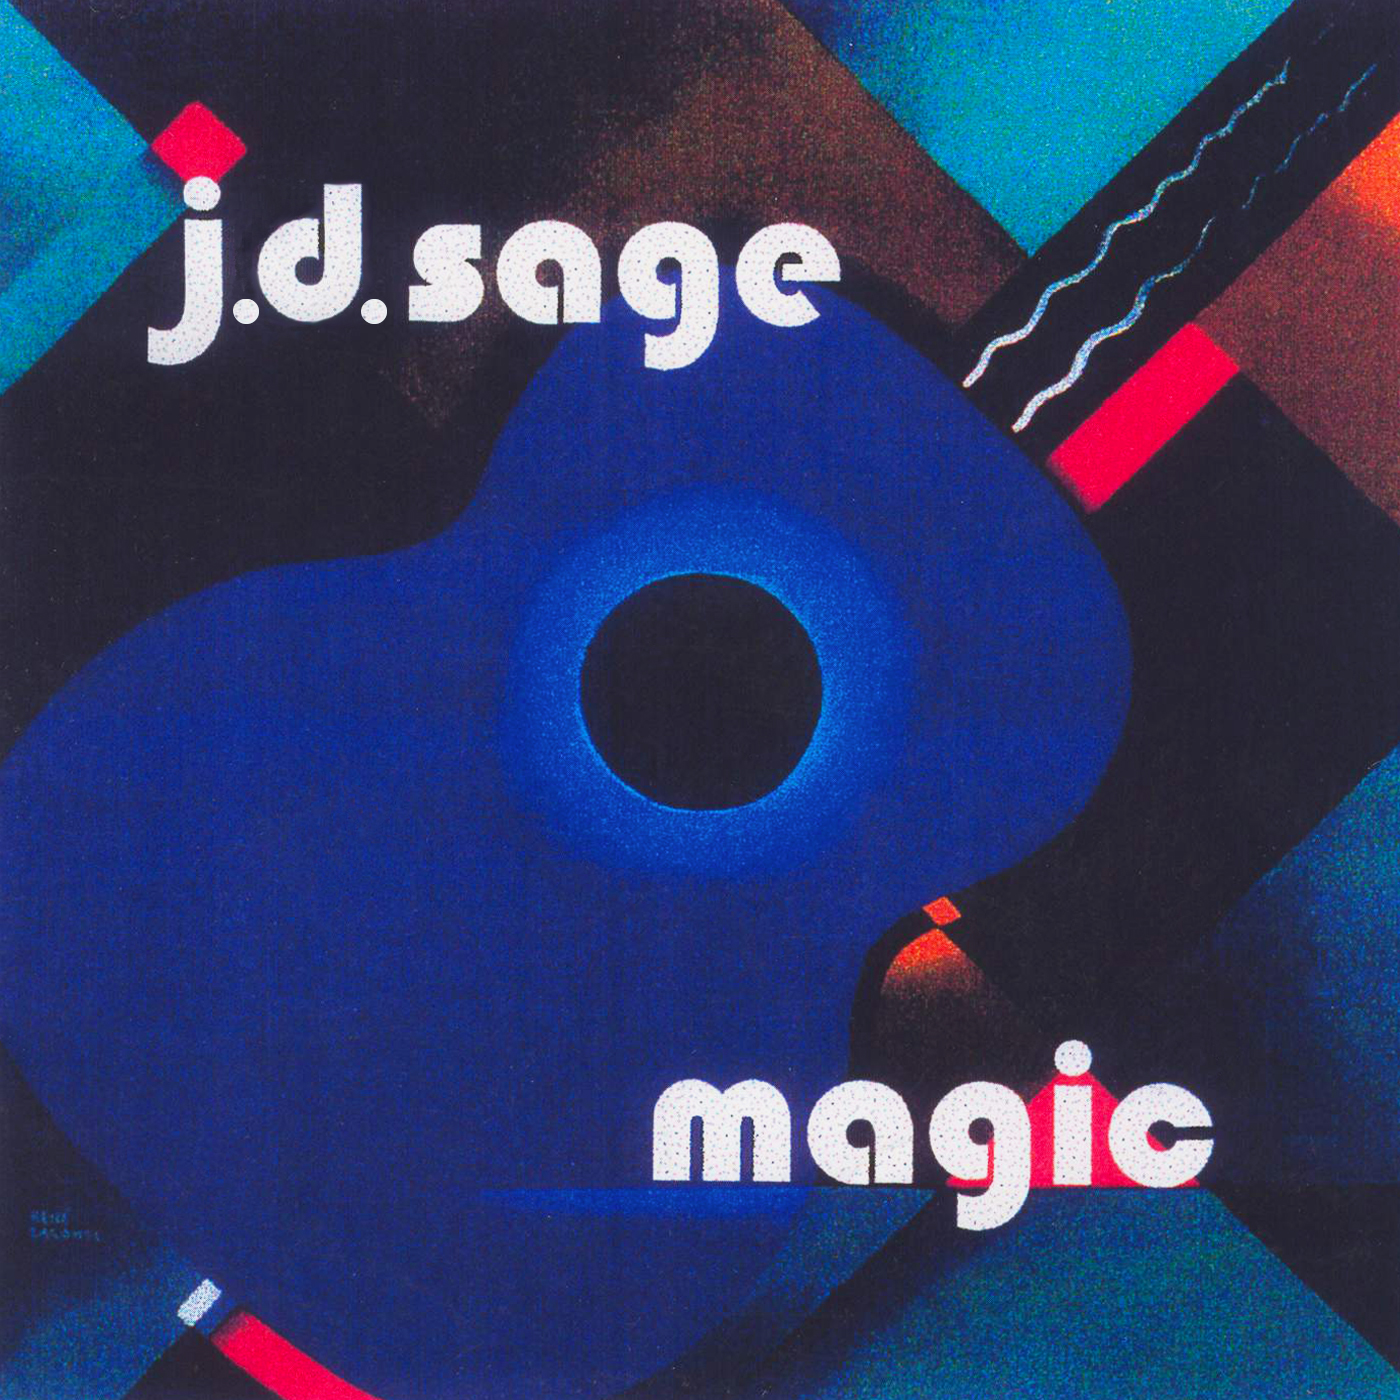 "J.D.SAGE Troubadour Campanologist ""Magic (A Dance)"" single www.jdsage.com"